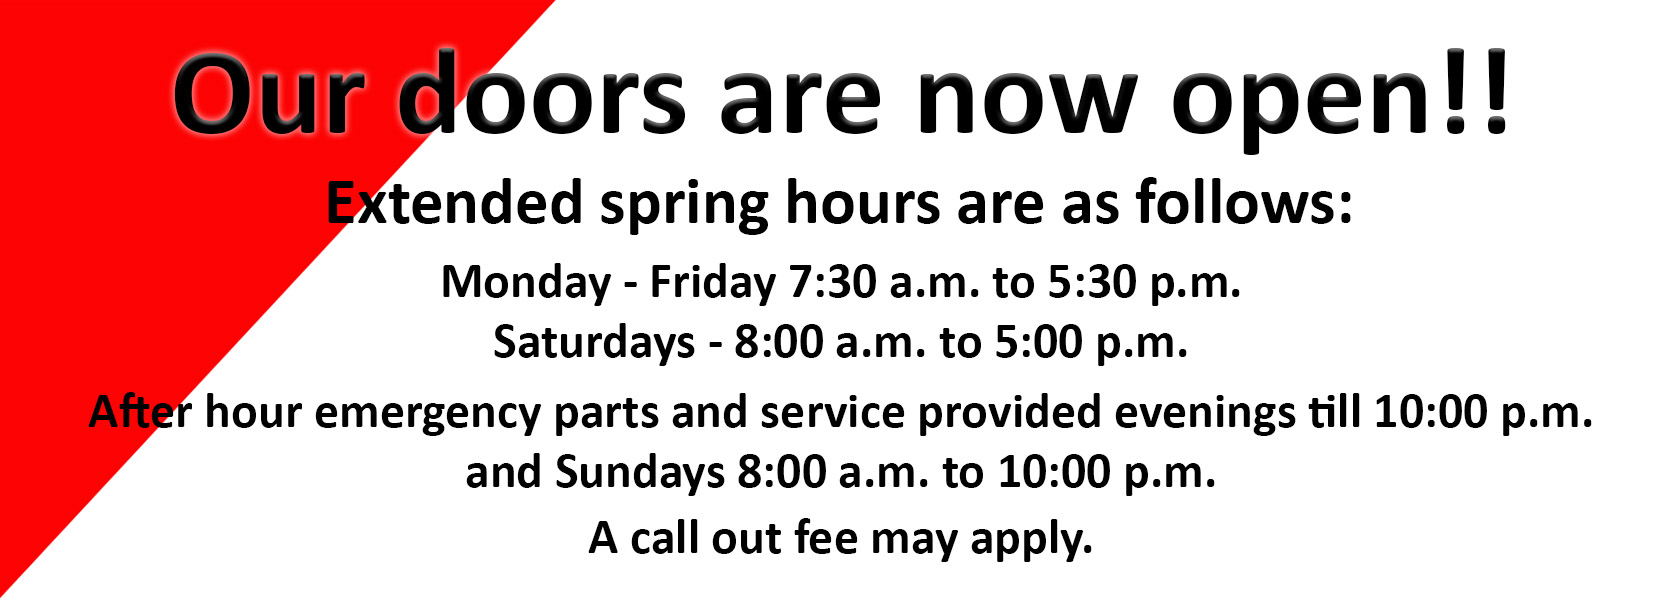 open spring hours